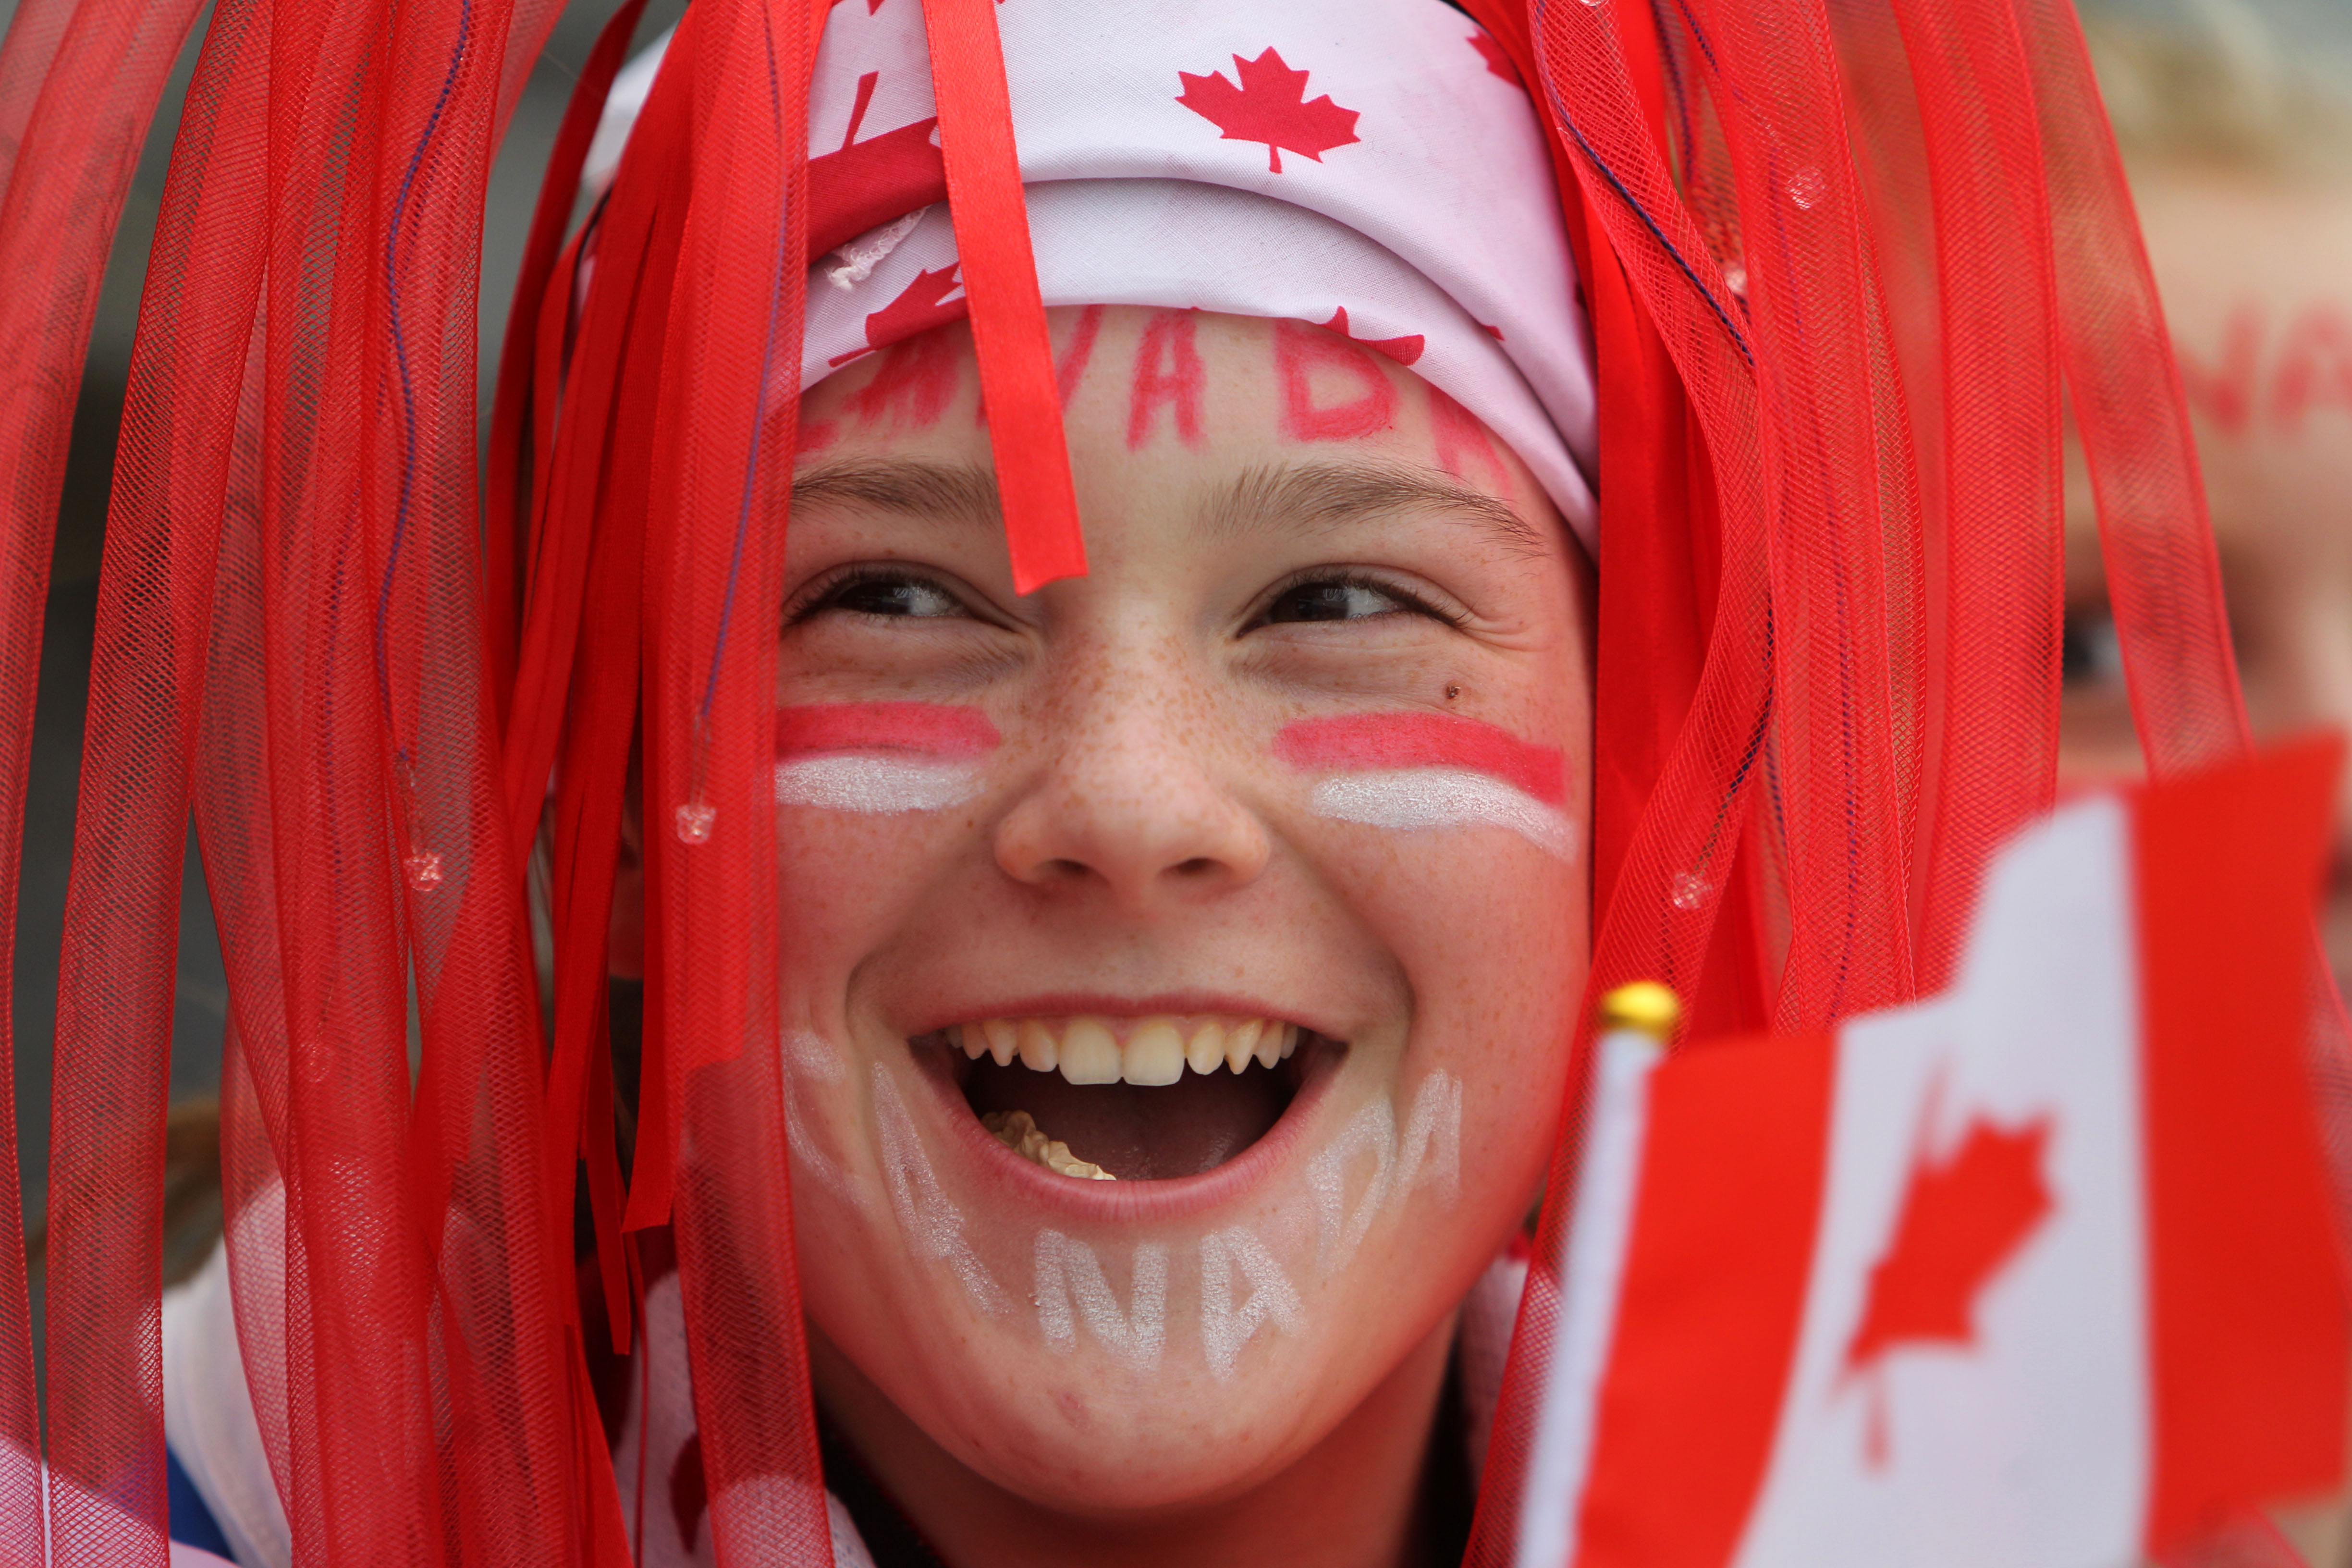 Young soccer fan Jadyn Friesen cheers on Team Canada at their friendly match against Team USA at Investors Group Field.